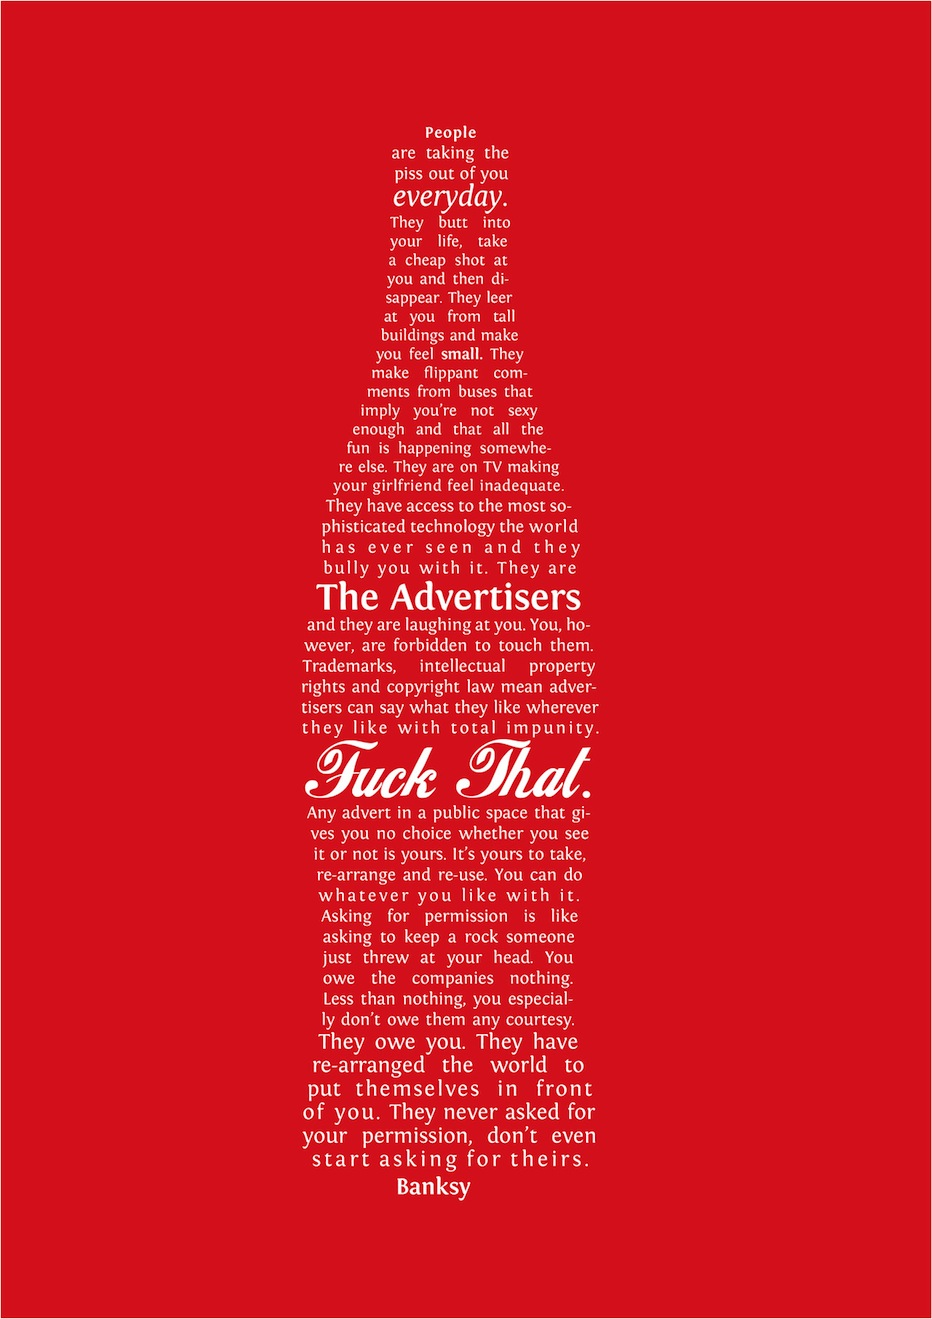 Coca Cola Quotes Alluring Typographic Antiad Forms 'banksy's Quote' Into The Shape Of A